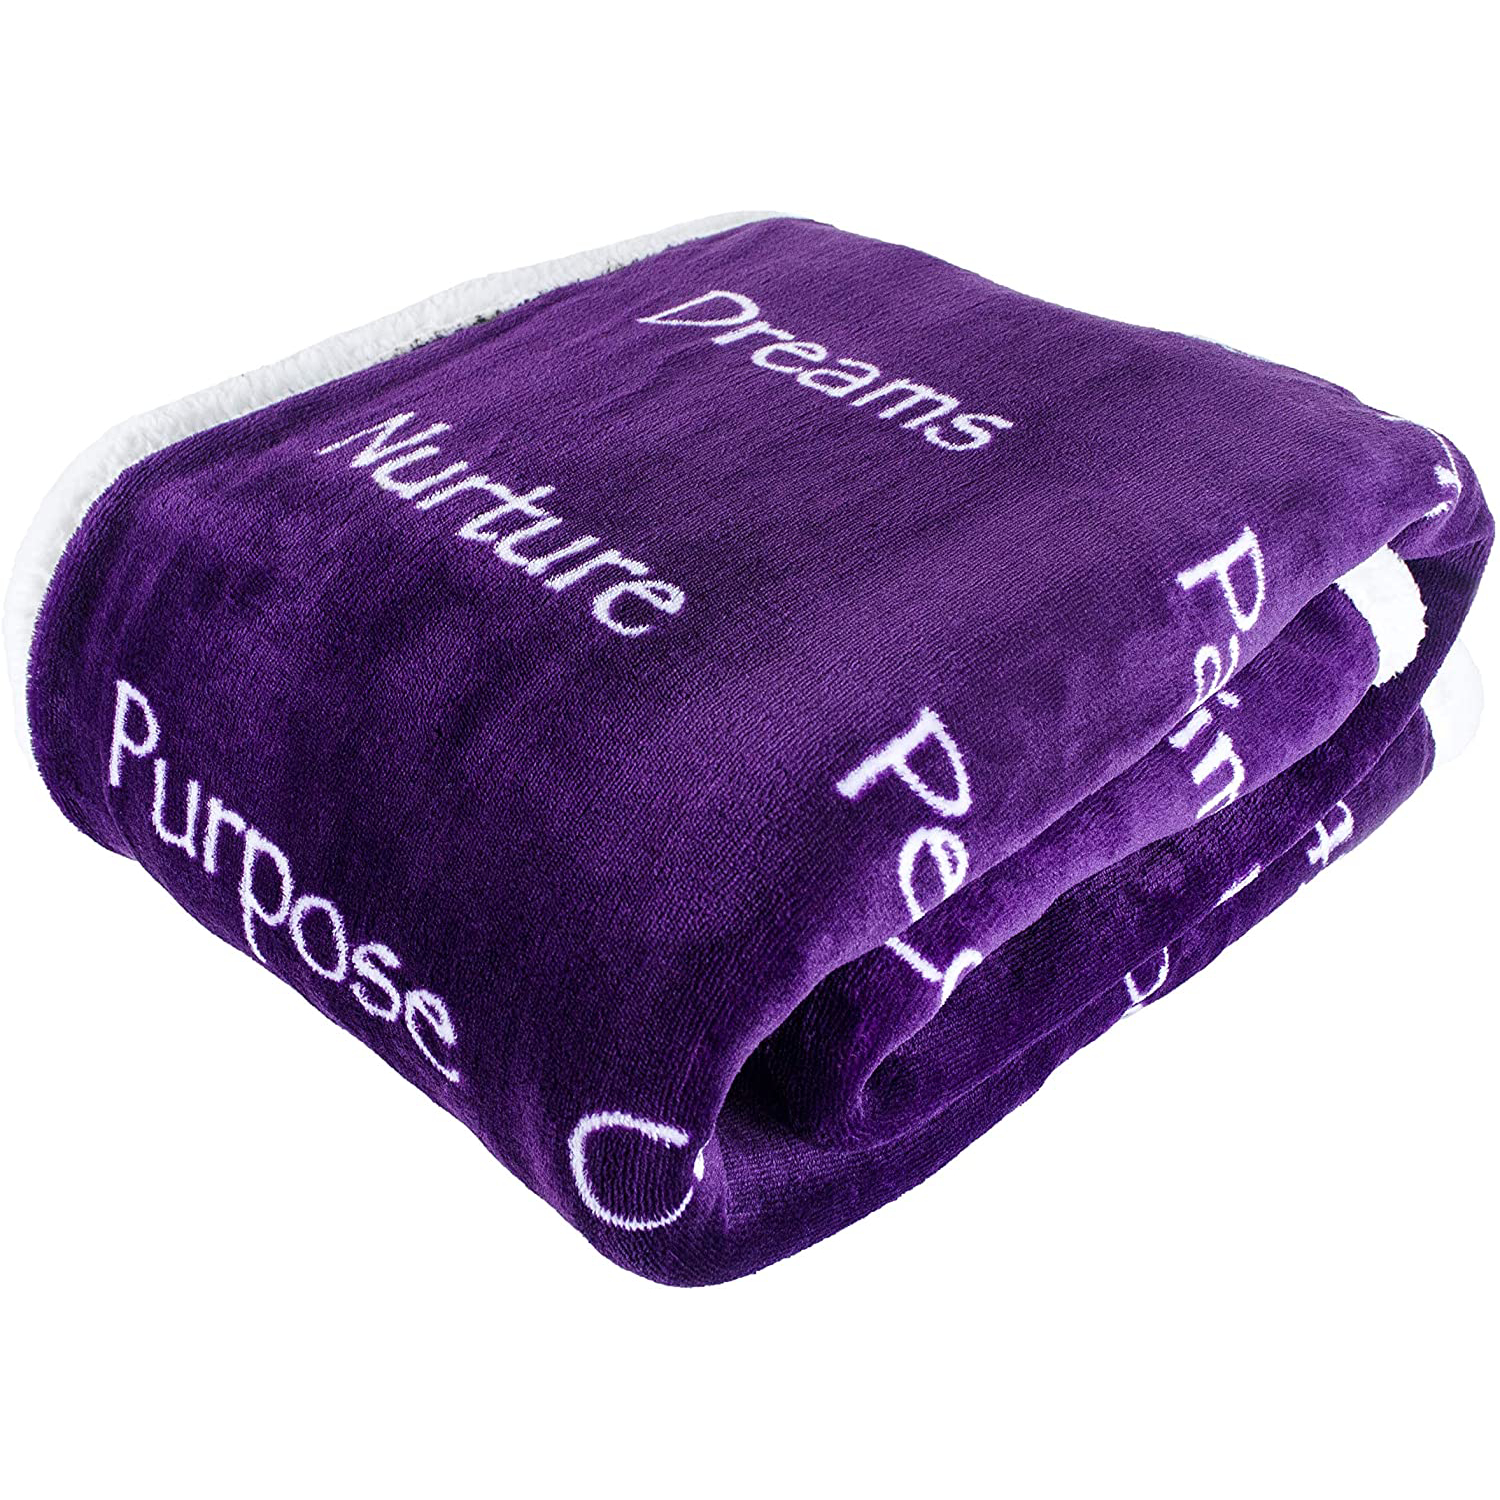 Plant-Based-Pros-Healing-Blanket-with-Inspirational-Message-of-Love-Hope-Happiness-and-Health-Purple